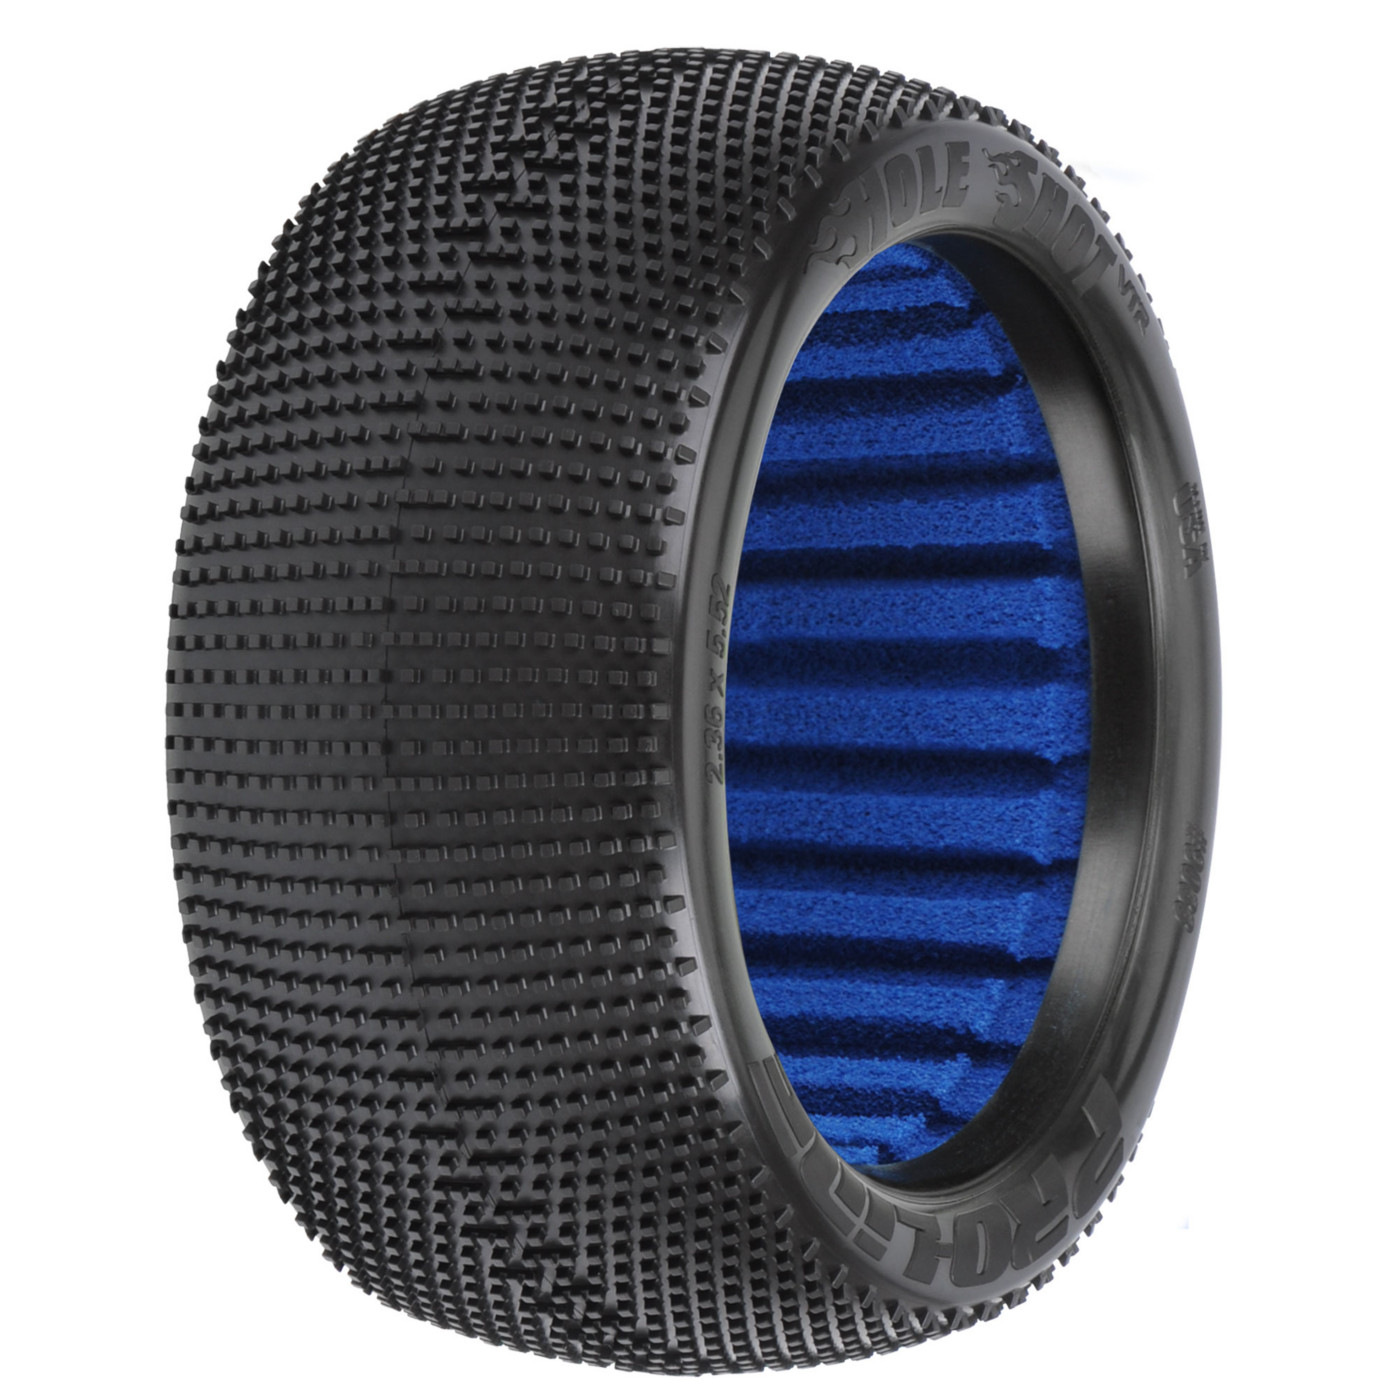 Pro-line Racing 1/8 Hole Shot VTR 4.0 S3 Soft Off-Road Tire (2): Truck, PRO9033203